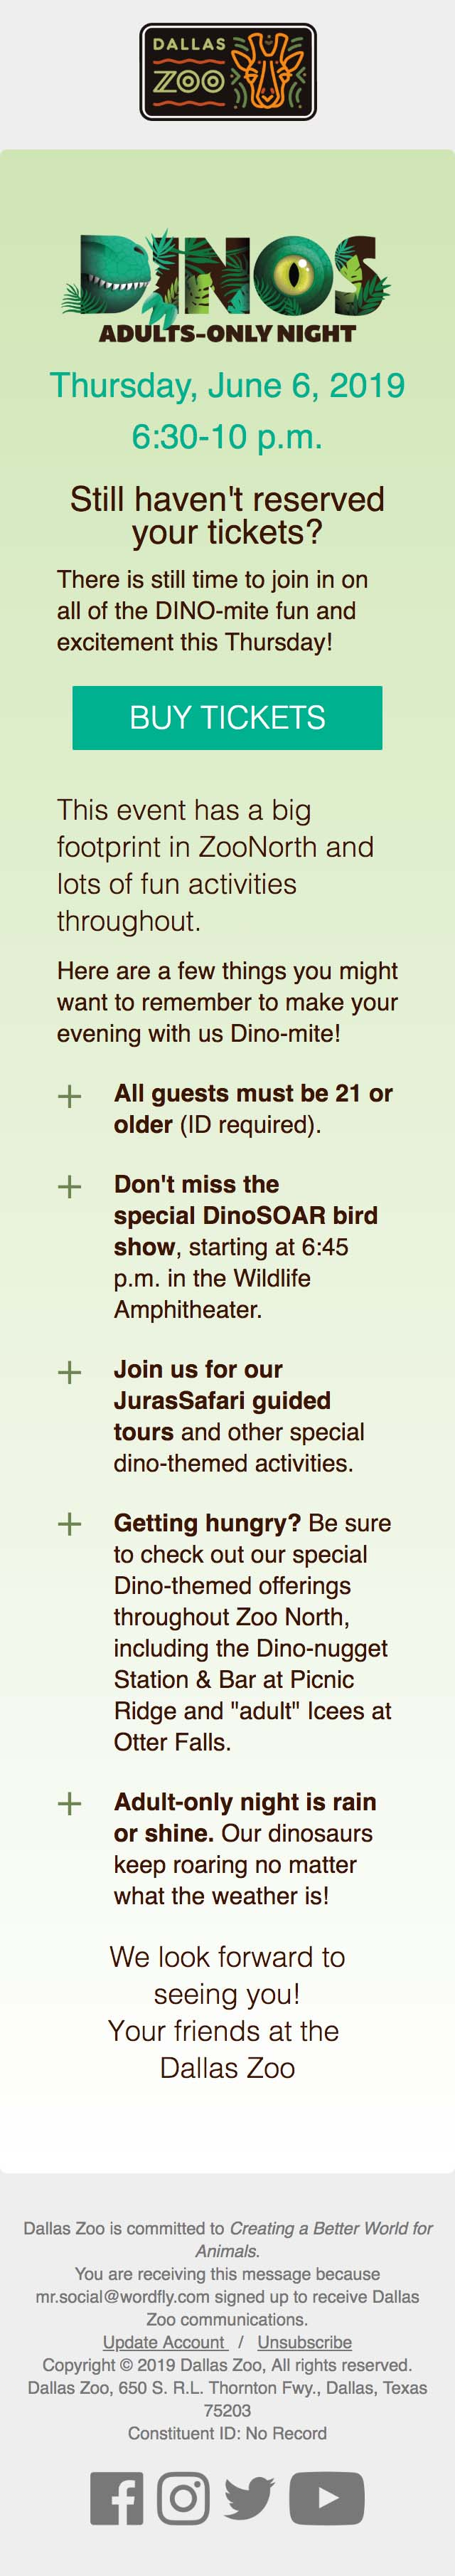 Join Us For Adults-Only Dino Night Tomorrow! - mobile view